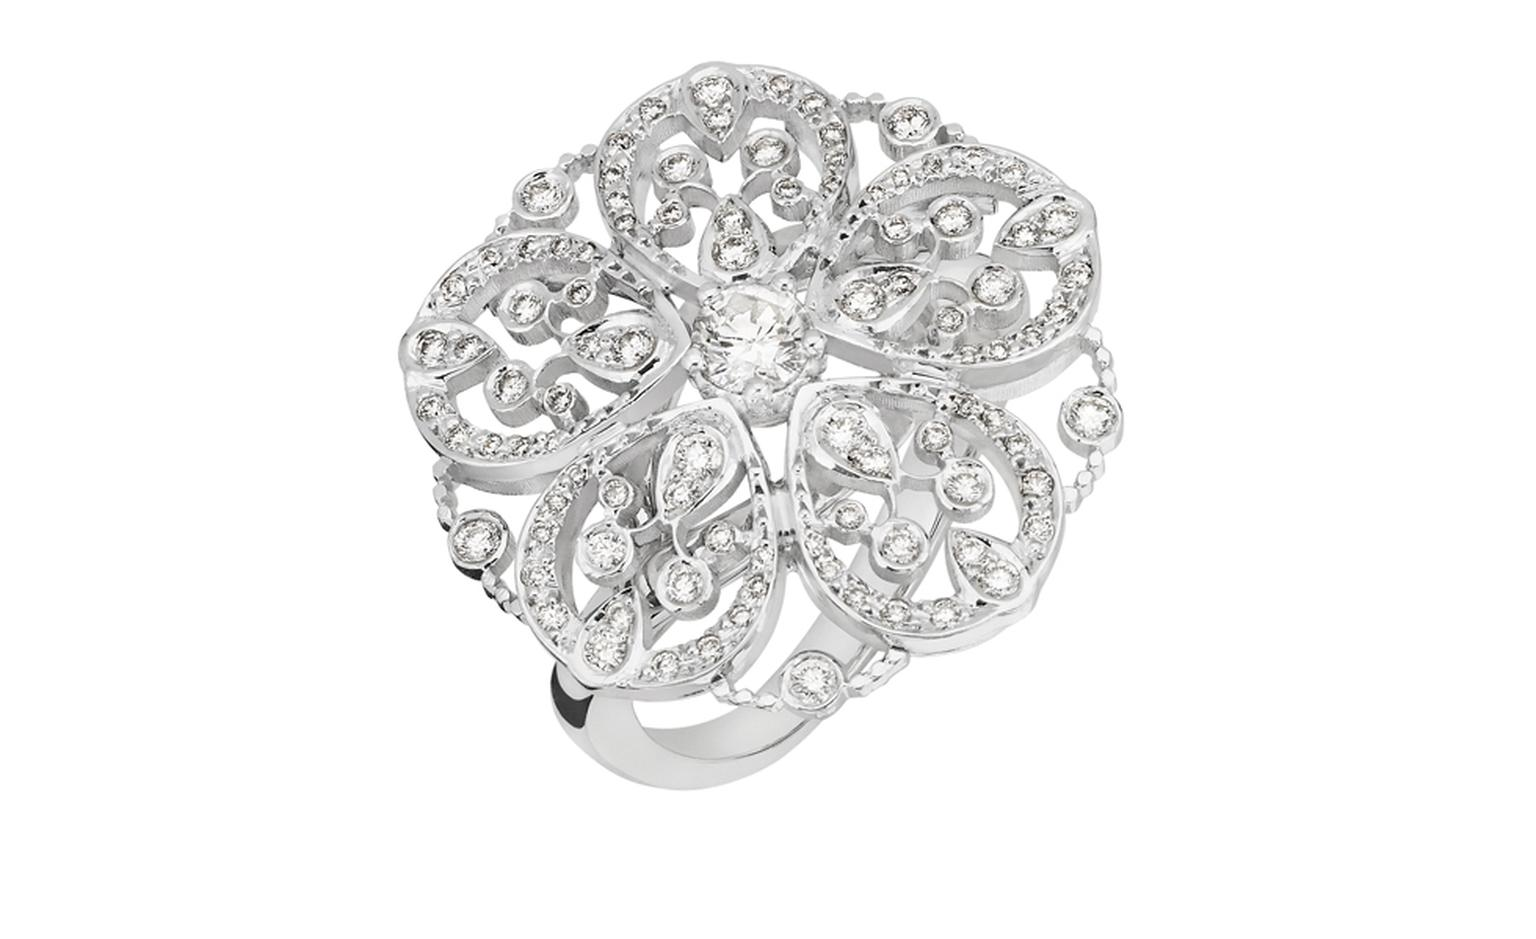 Chanel Secrets D'Orient Camelia Dentelle Ring in 18 karat white gold, diamonds and cultured pearl. POA